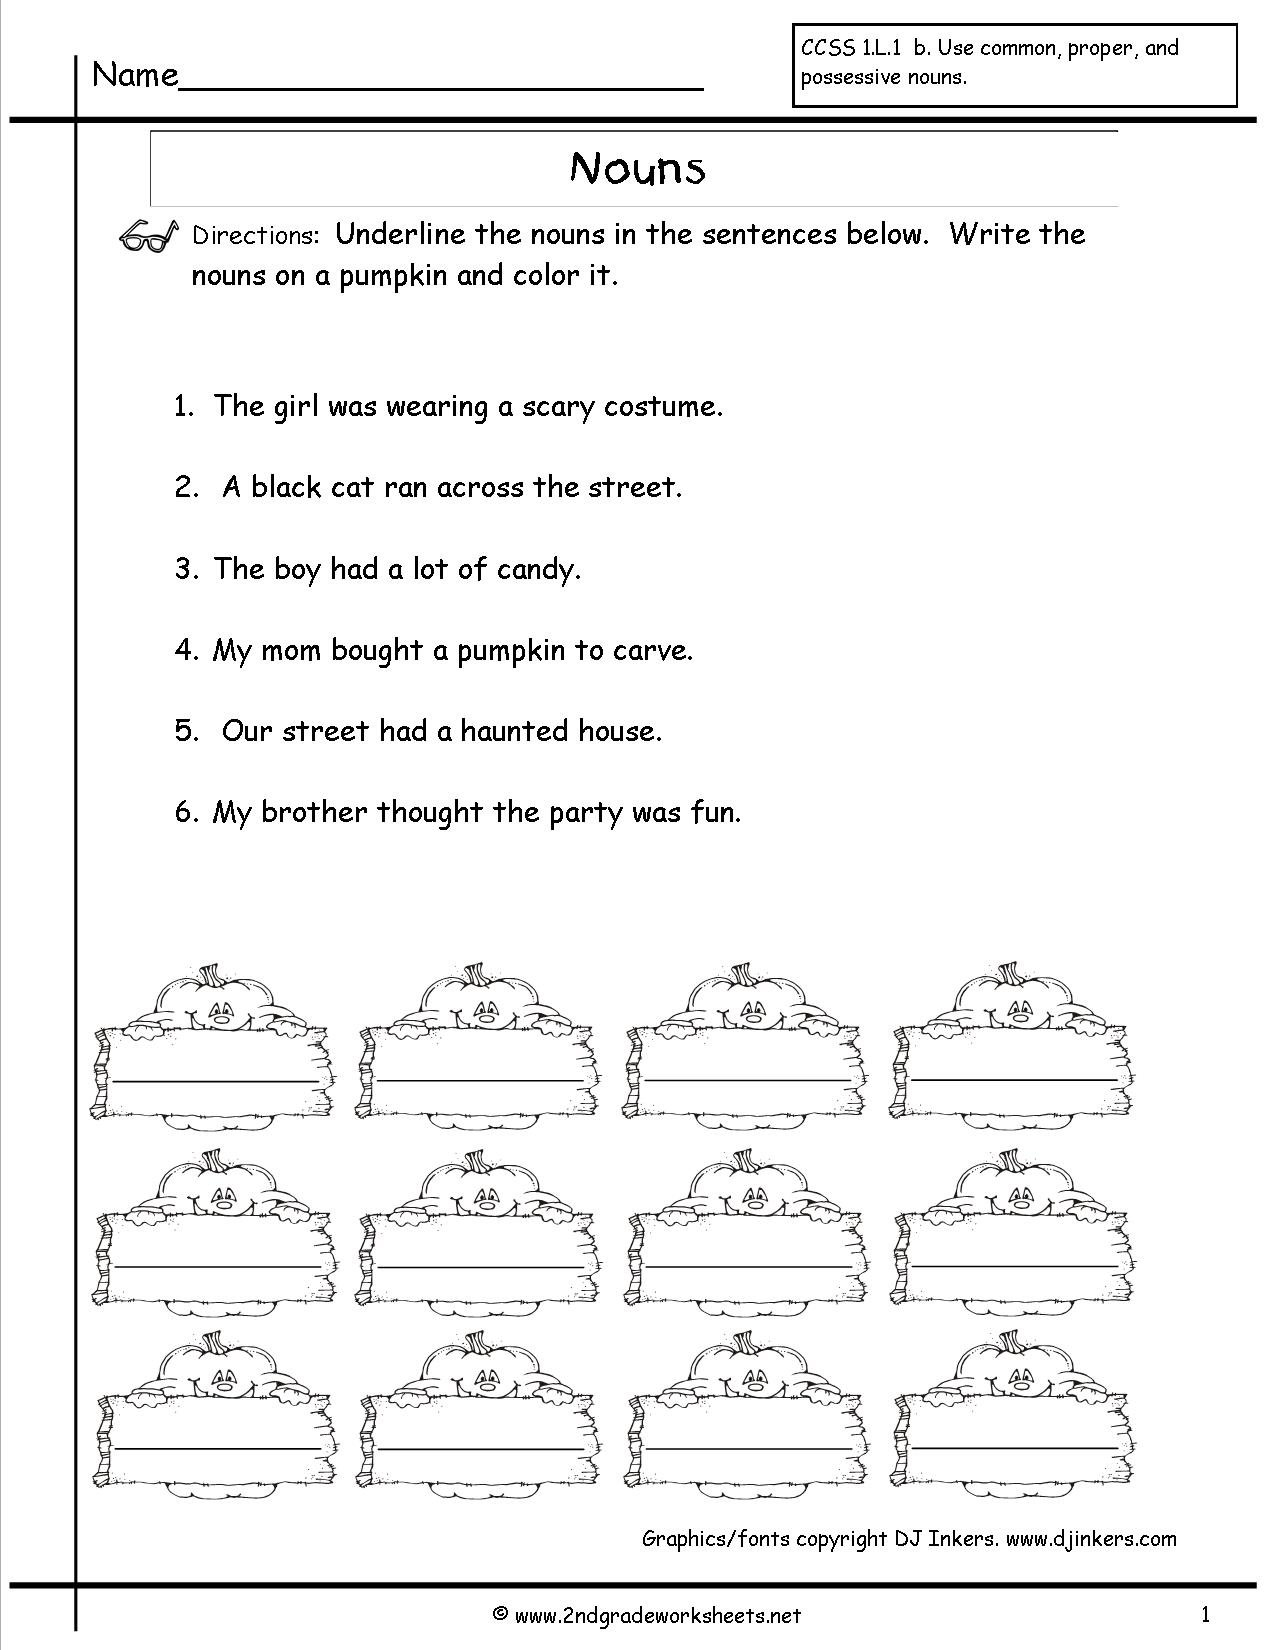 Nouns Worksheet 4th Grade Excelguider